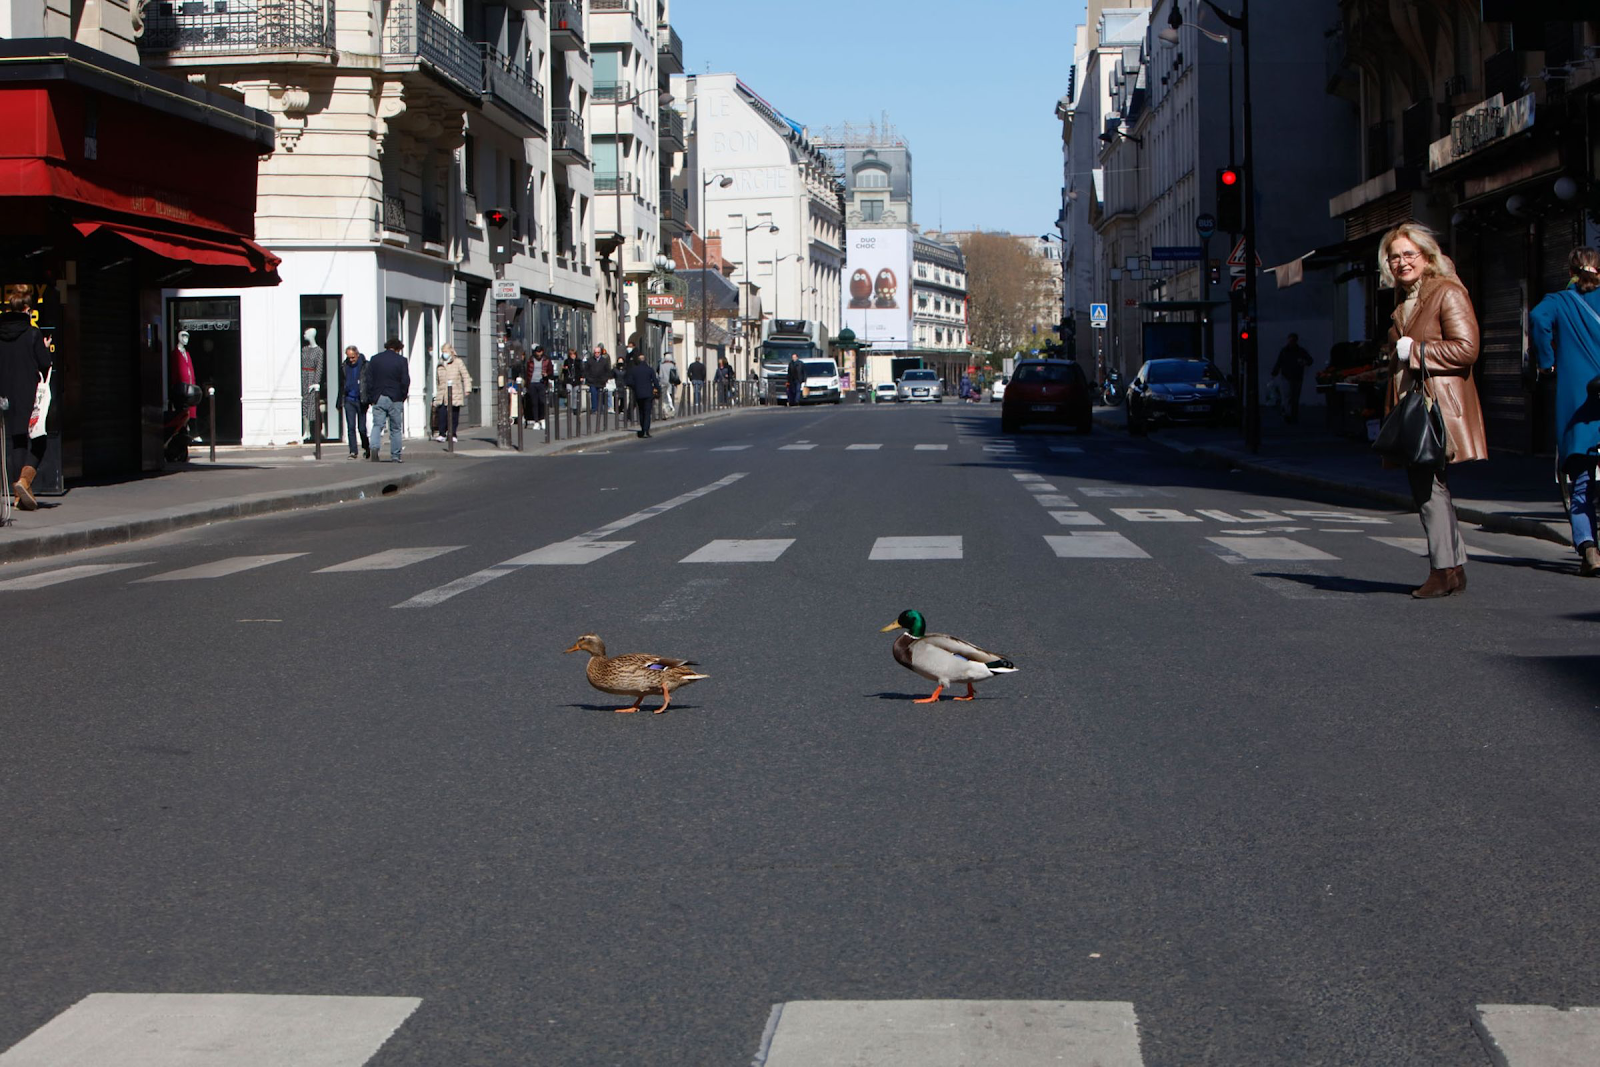 20200413-france ducks.png